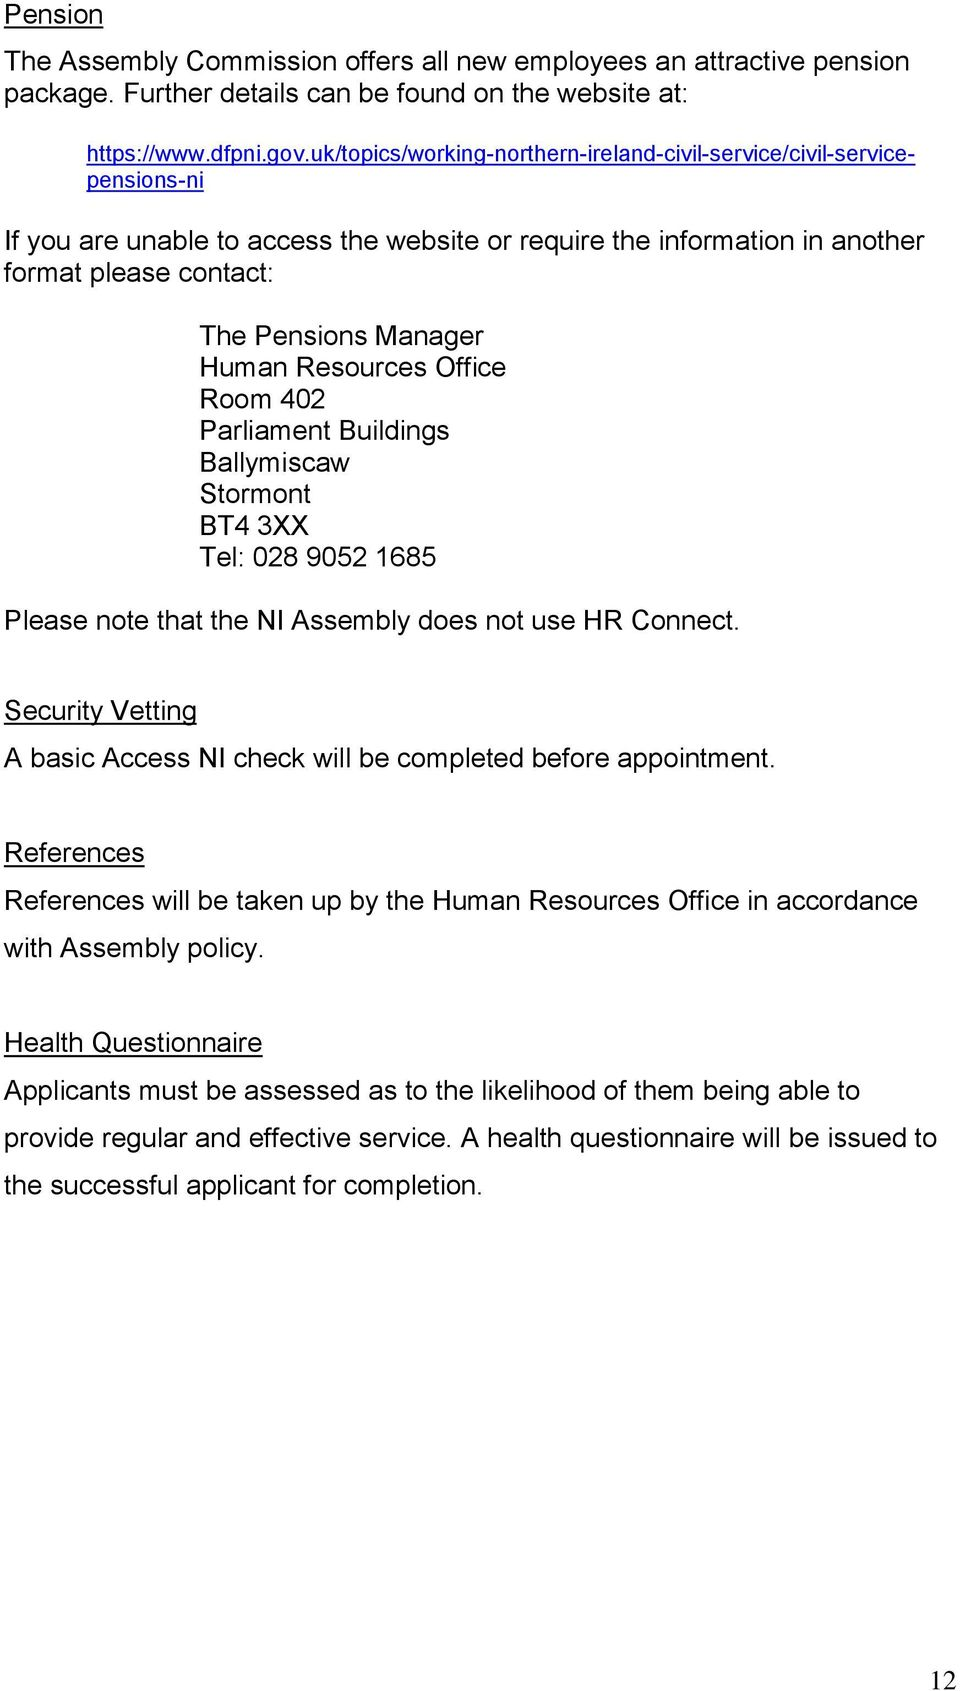 Human Resources Office Room 402 Parliament Buildings Ballymiscaw Stormont BT4 3XX Tel: 028 9052 1685 Please note that the NI Assembly does not use HR Connect.